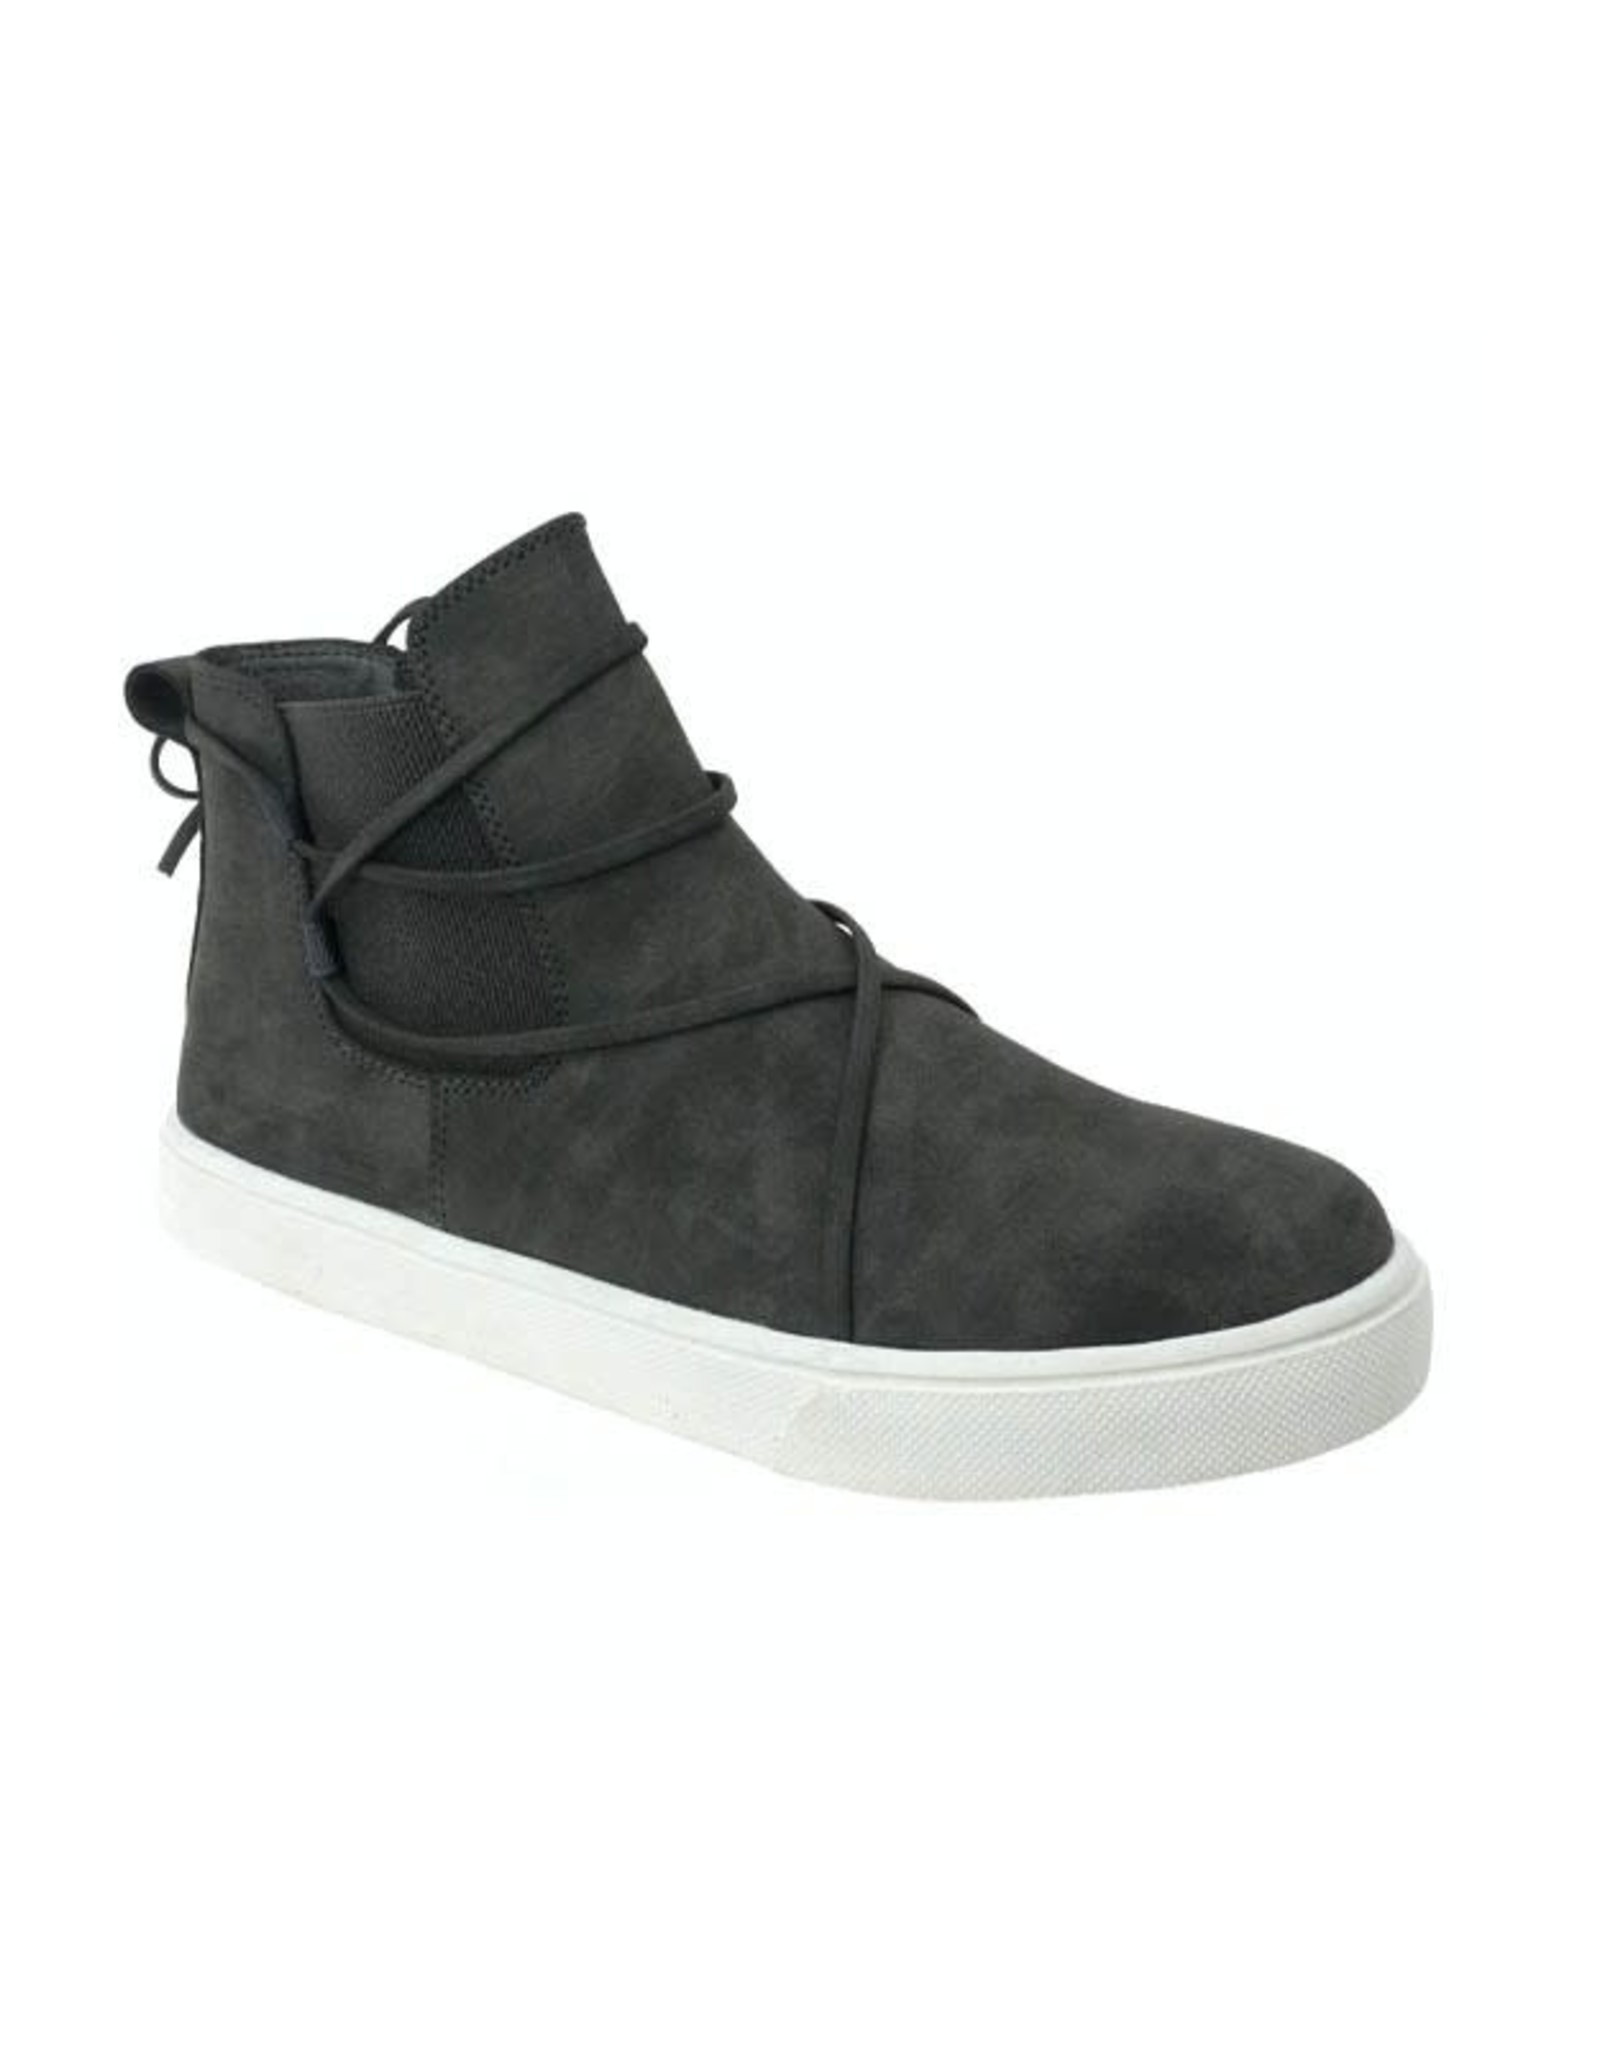 MIAMI SHOE WHOLESALE LANA CHARCOAL HIGH TOP STRETCH SIDE SNEAKER